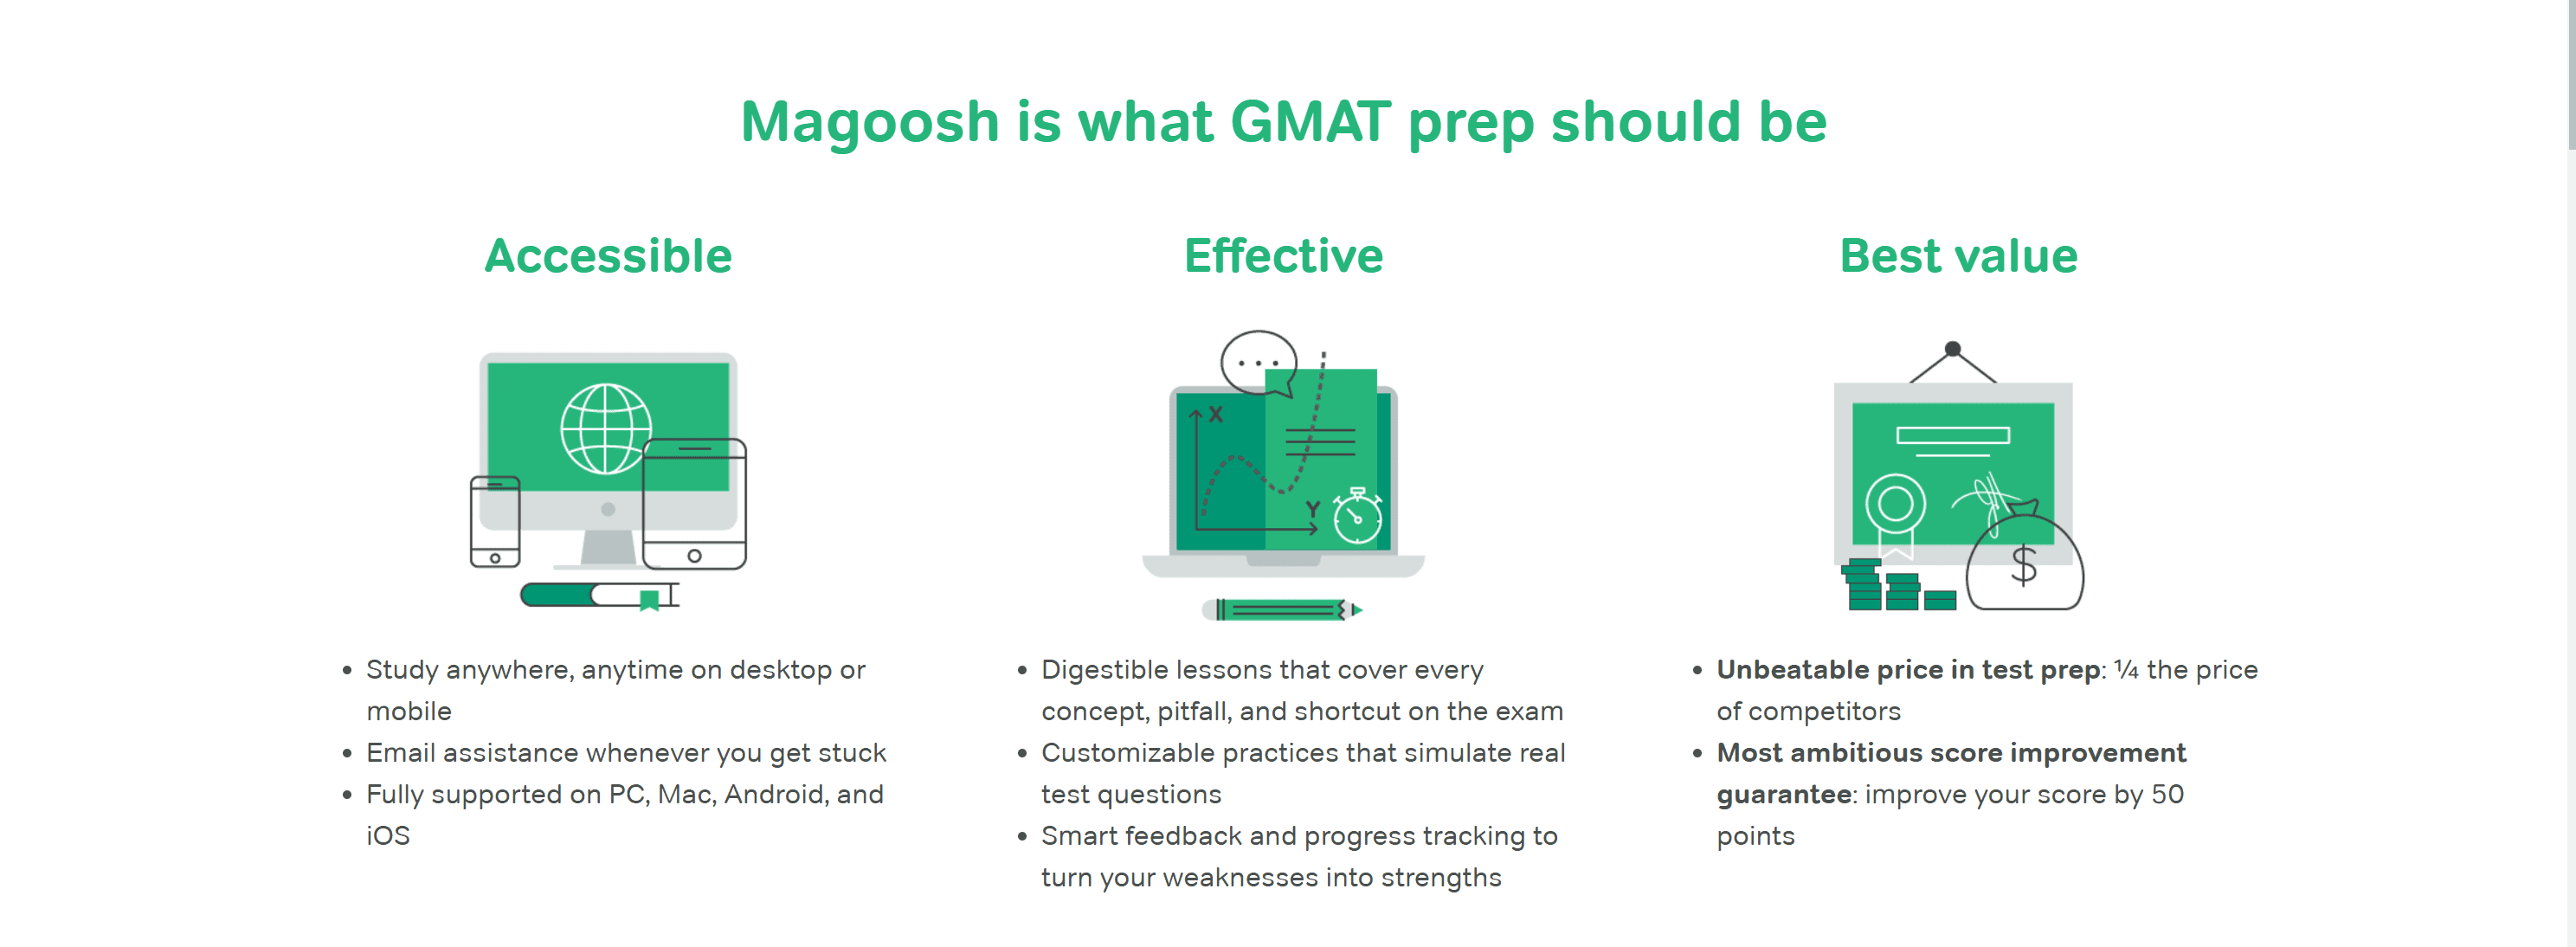 Magoosh Online Test Prep Amazon Cheap